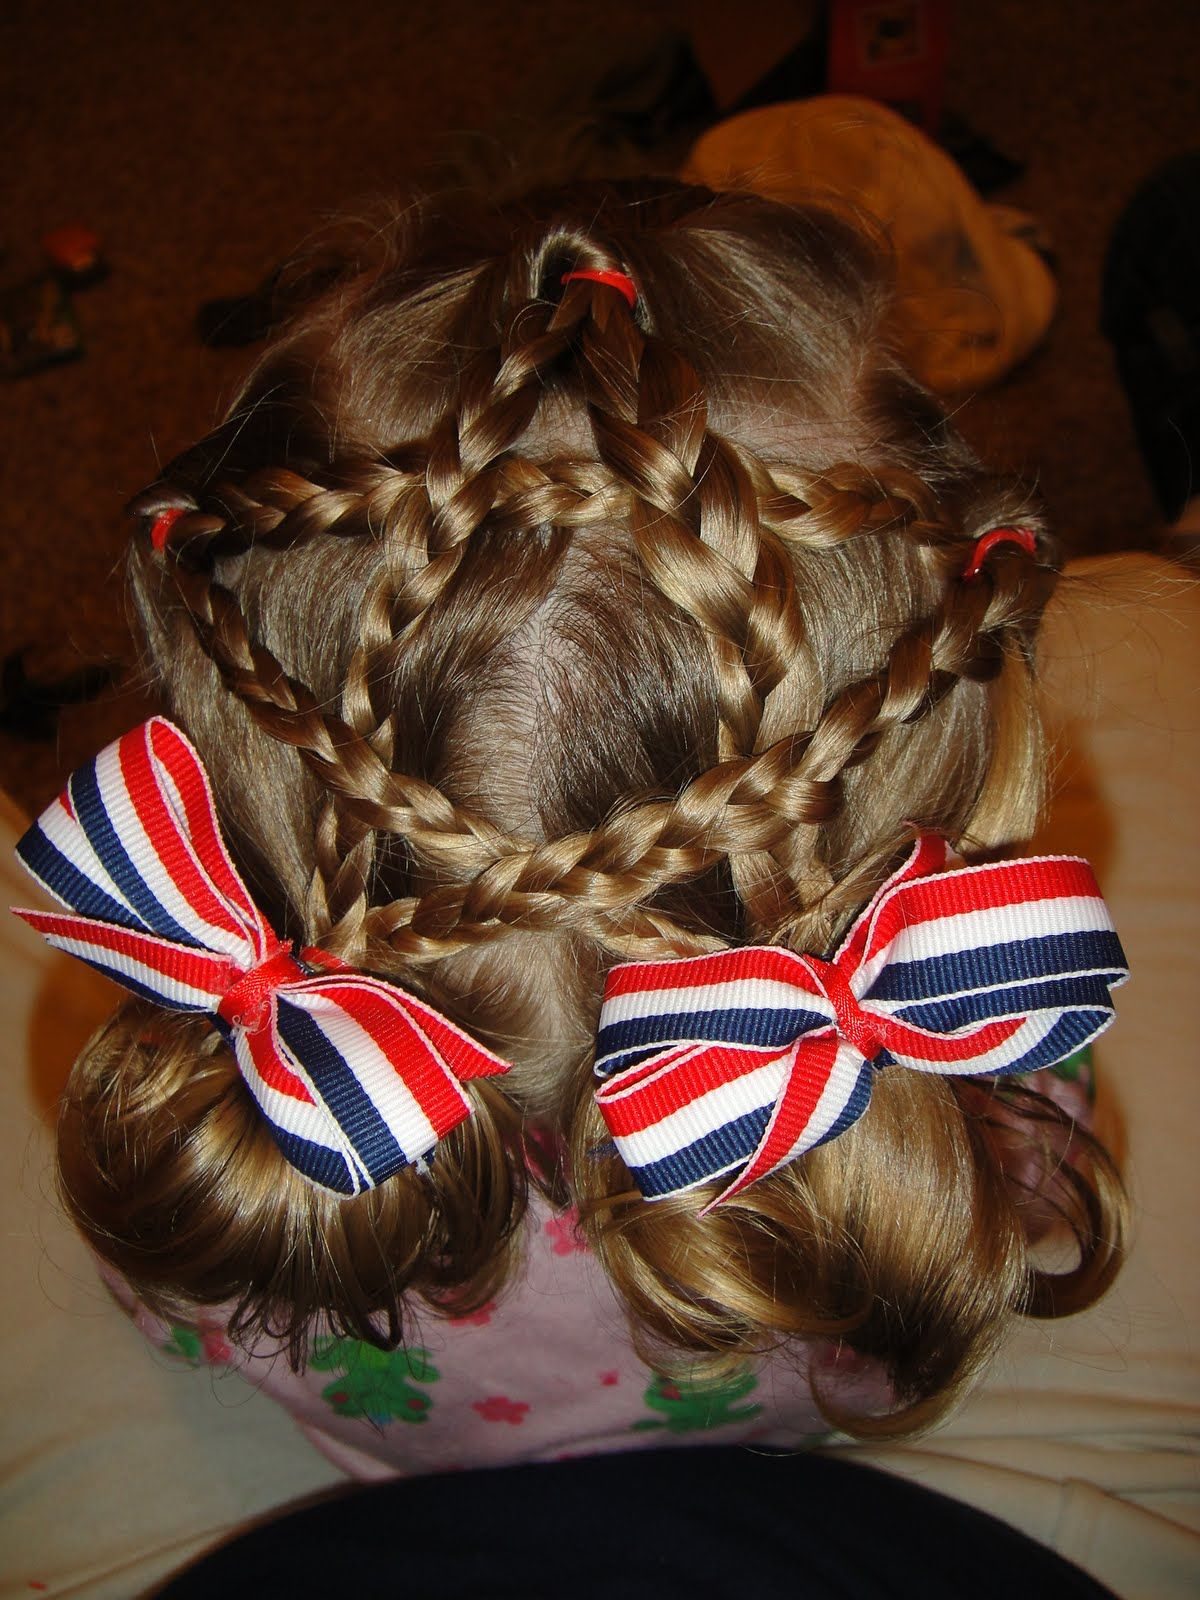 Fourth Of July Hairstyles A Cute Star Braid For The 4th Of July Now Just Got To Add